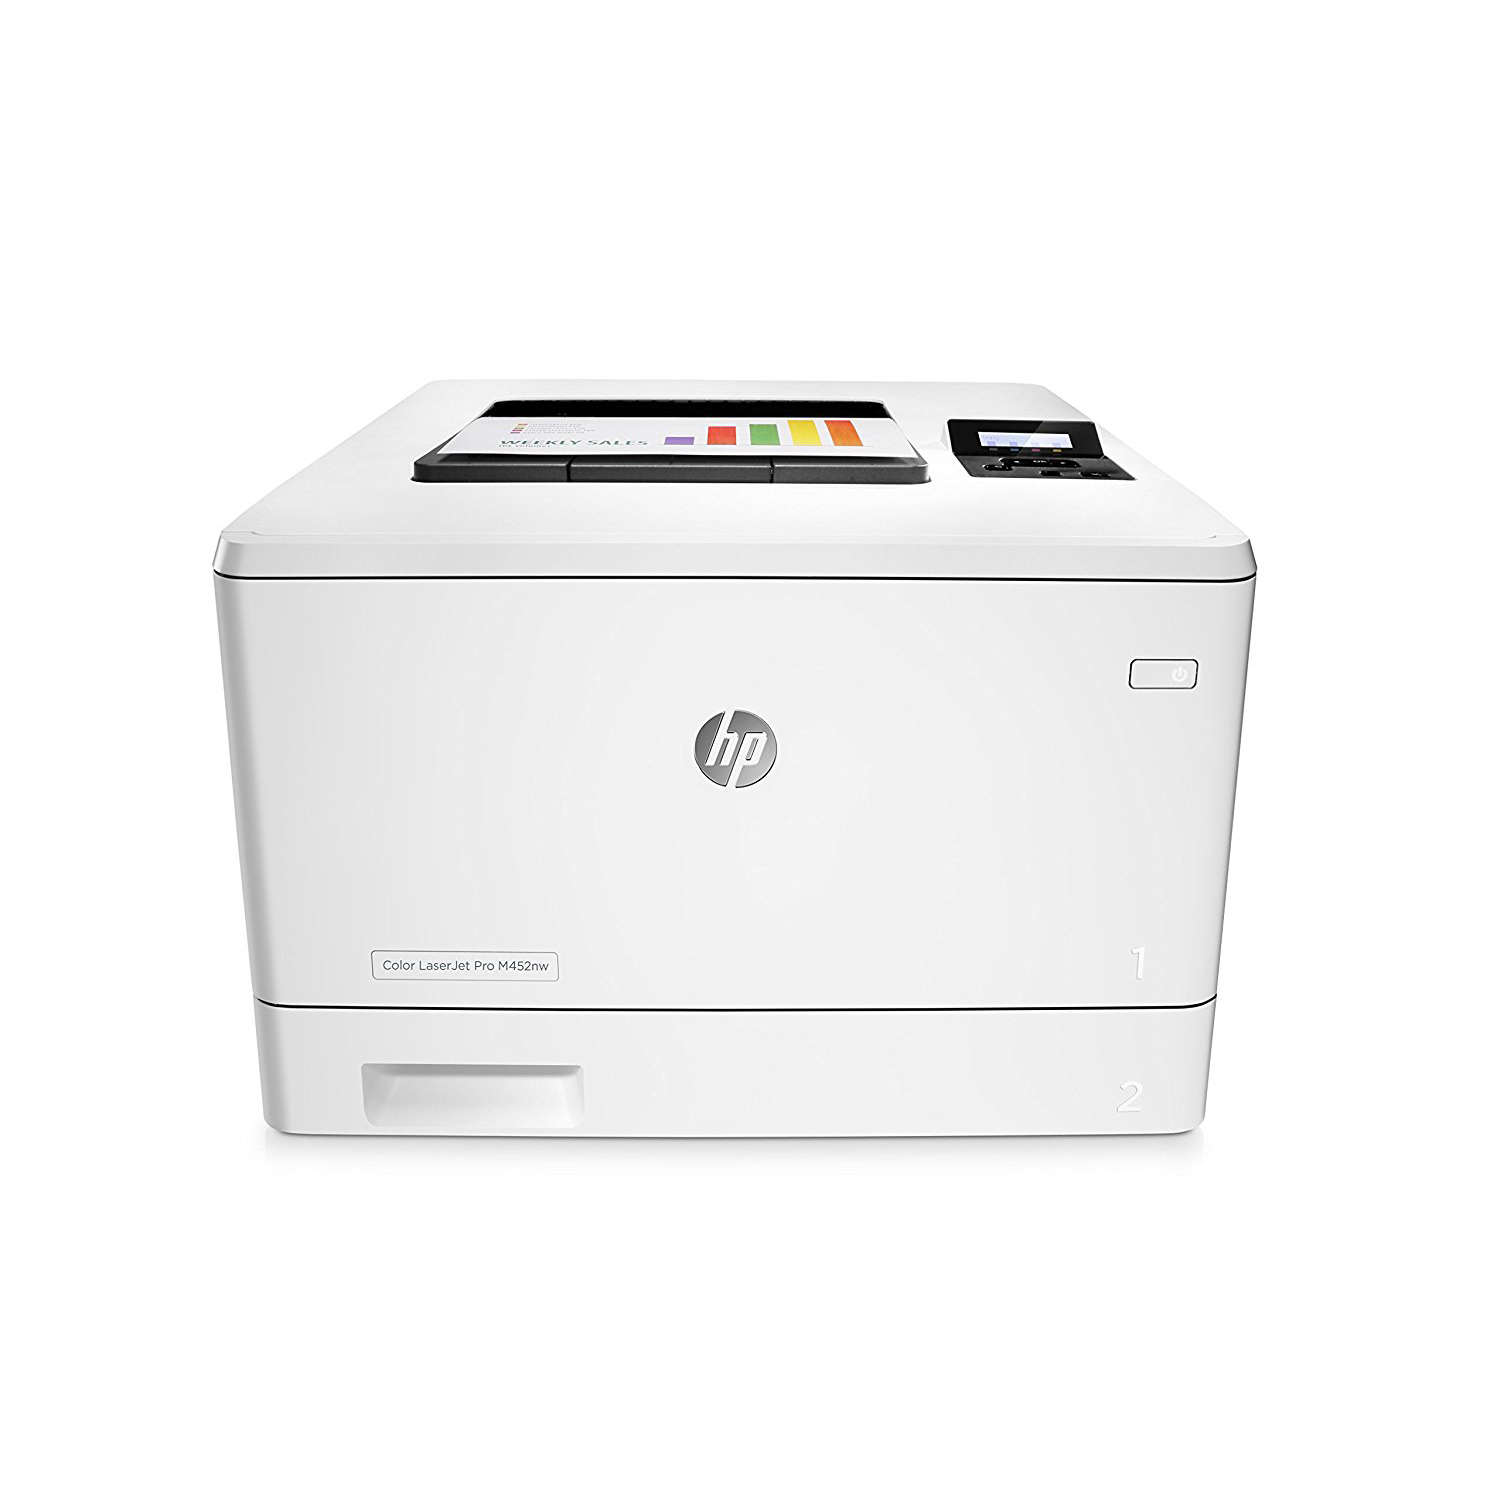 HP LaserJet Pro M452nw Wireless Color Laser Printer